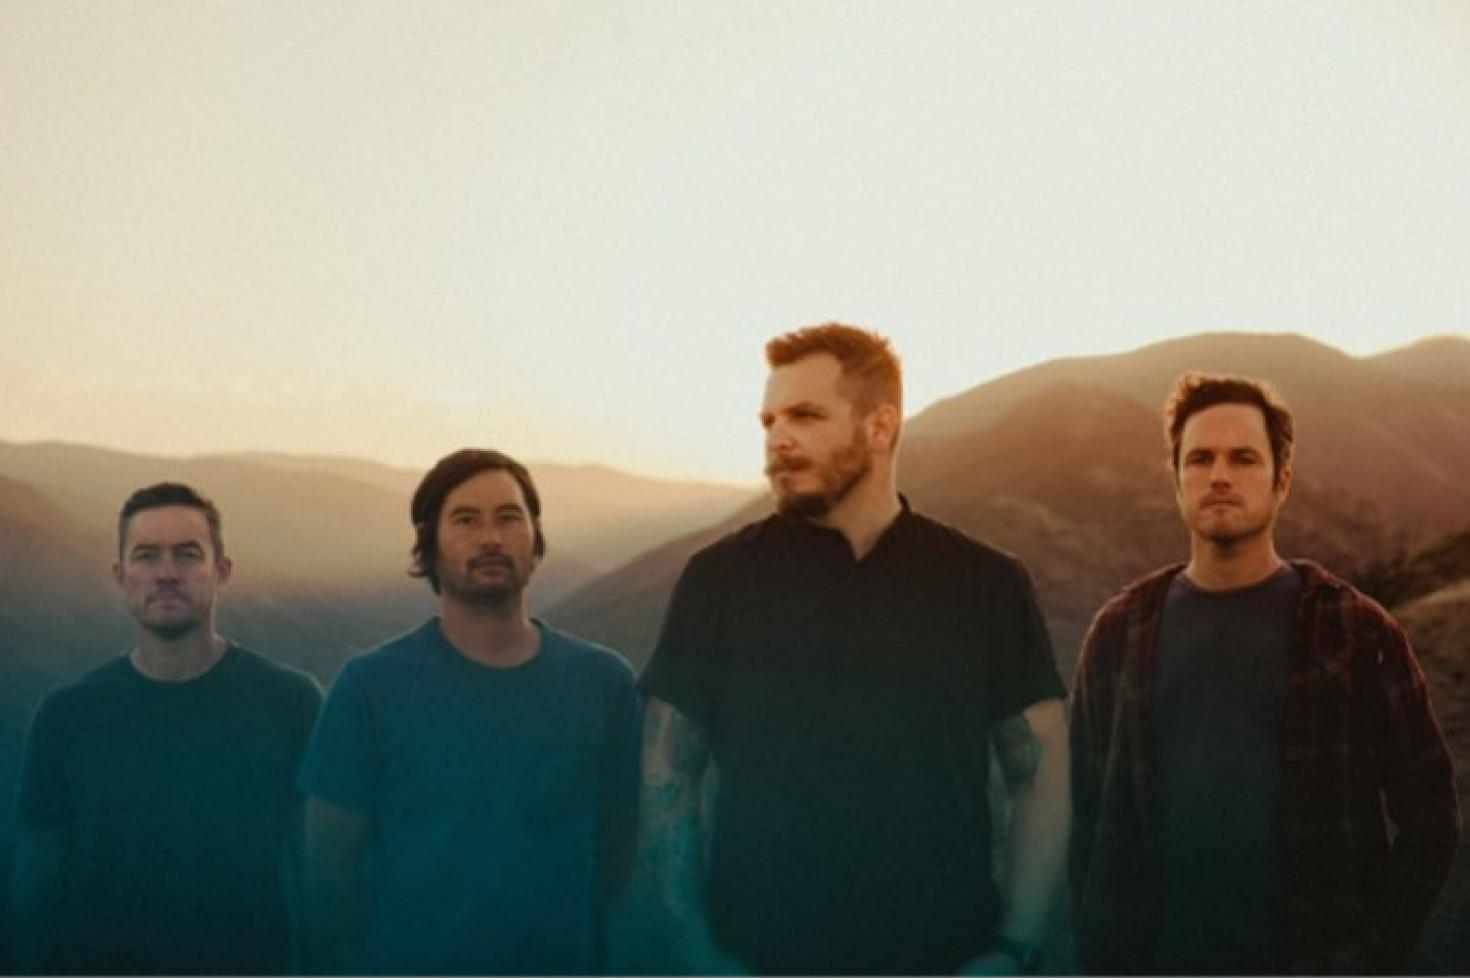 Thrice release new single 'Summer Set Fire To The Rain'